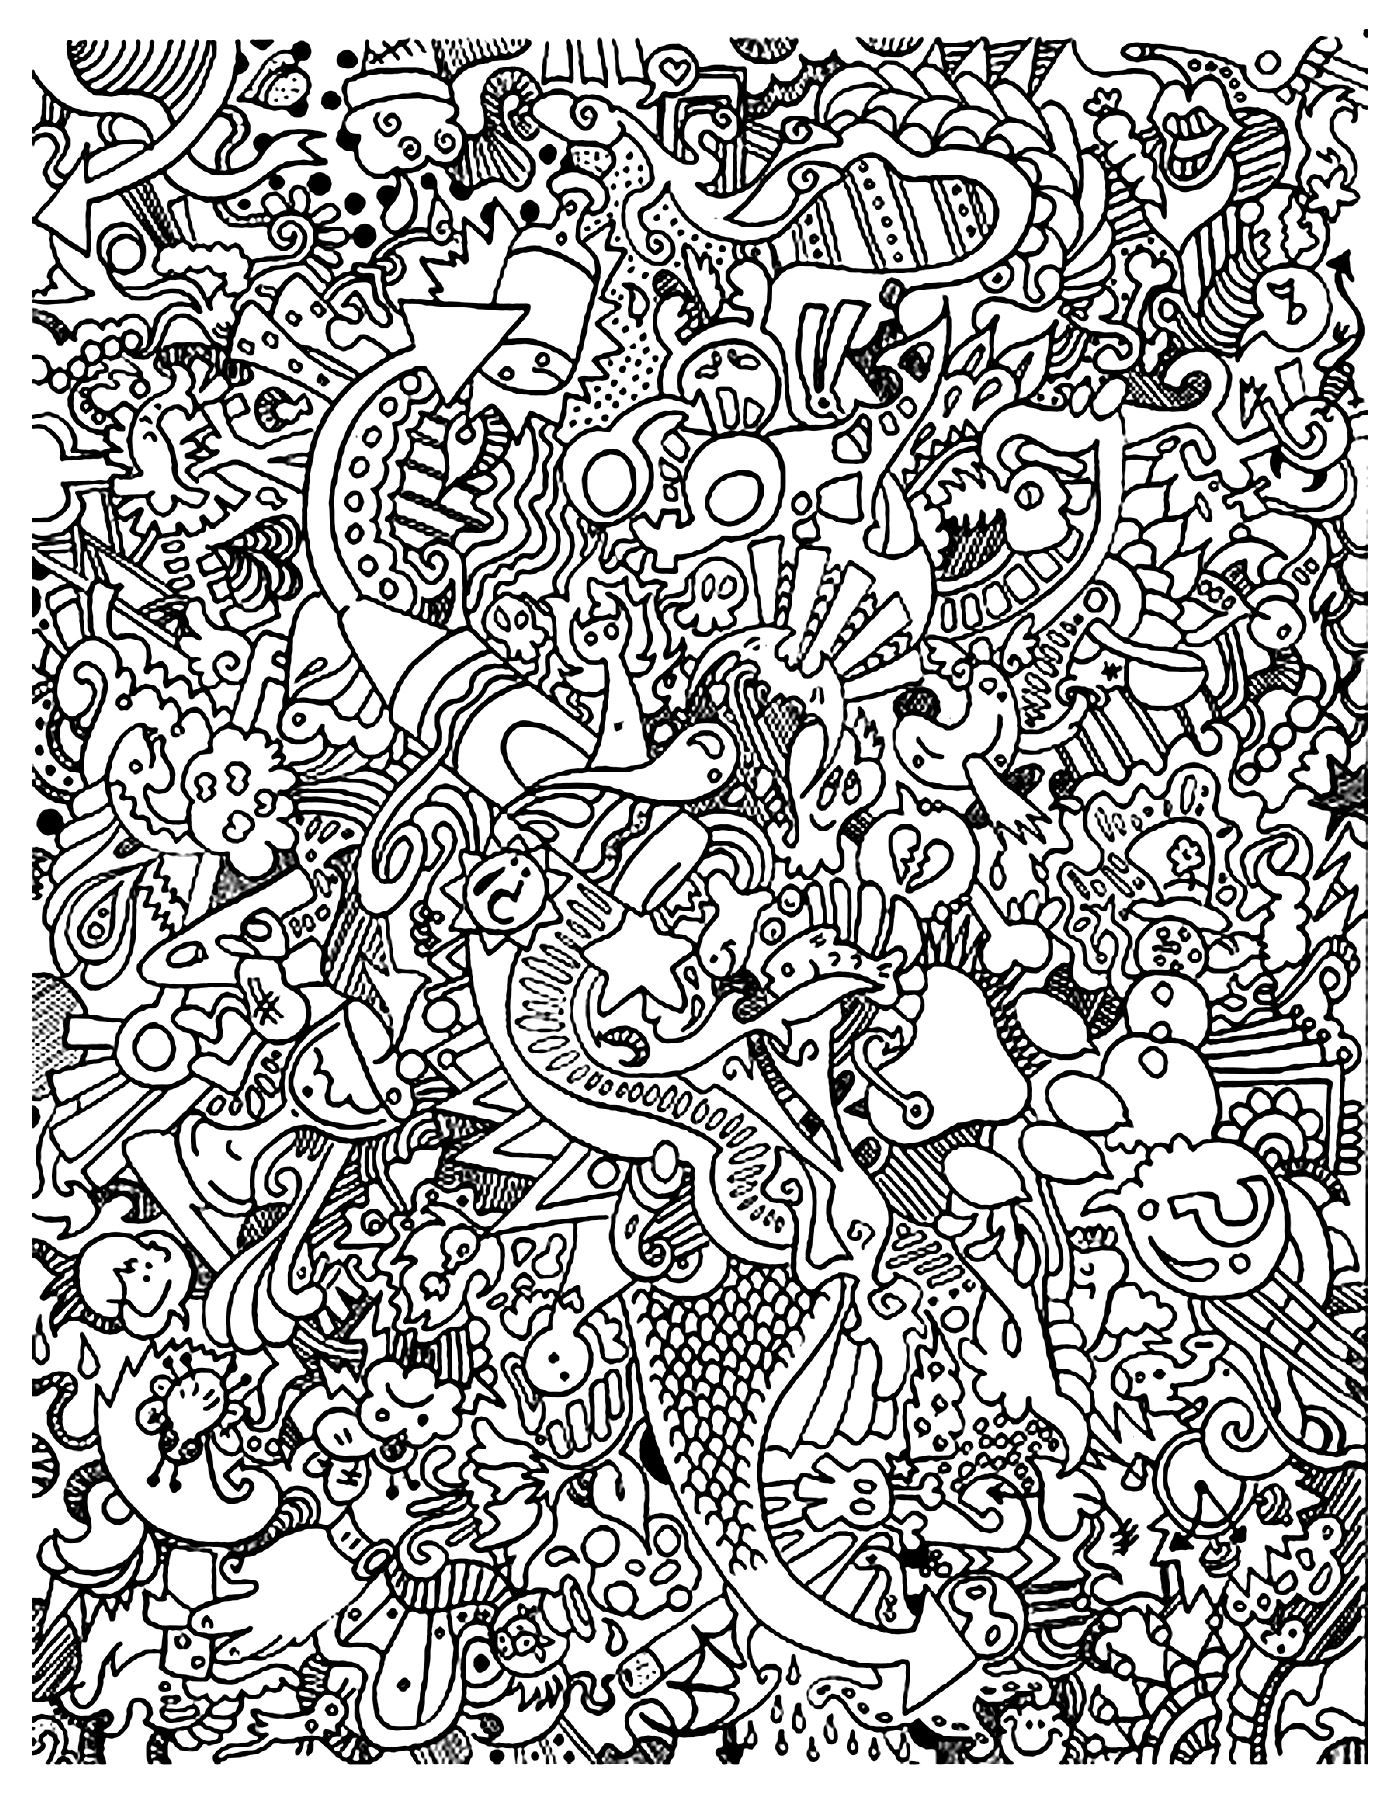 Free Coloring Page Coloring-Doodle-Art-Doodling-18. Very Complex - Free Printable Doodle Patterns